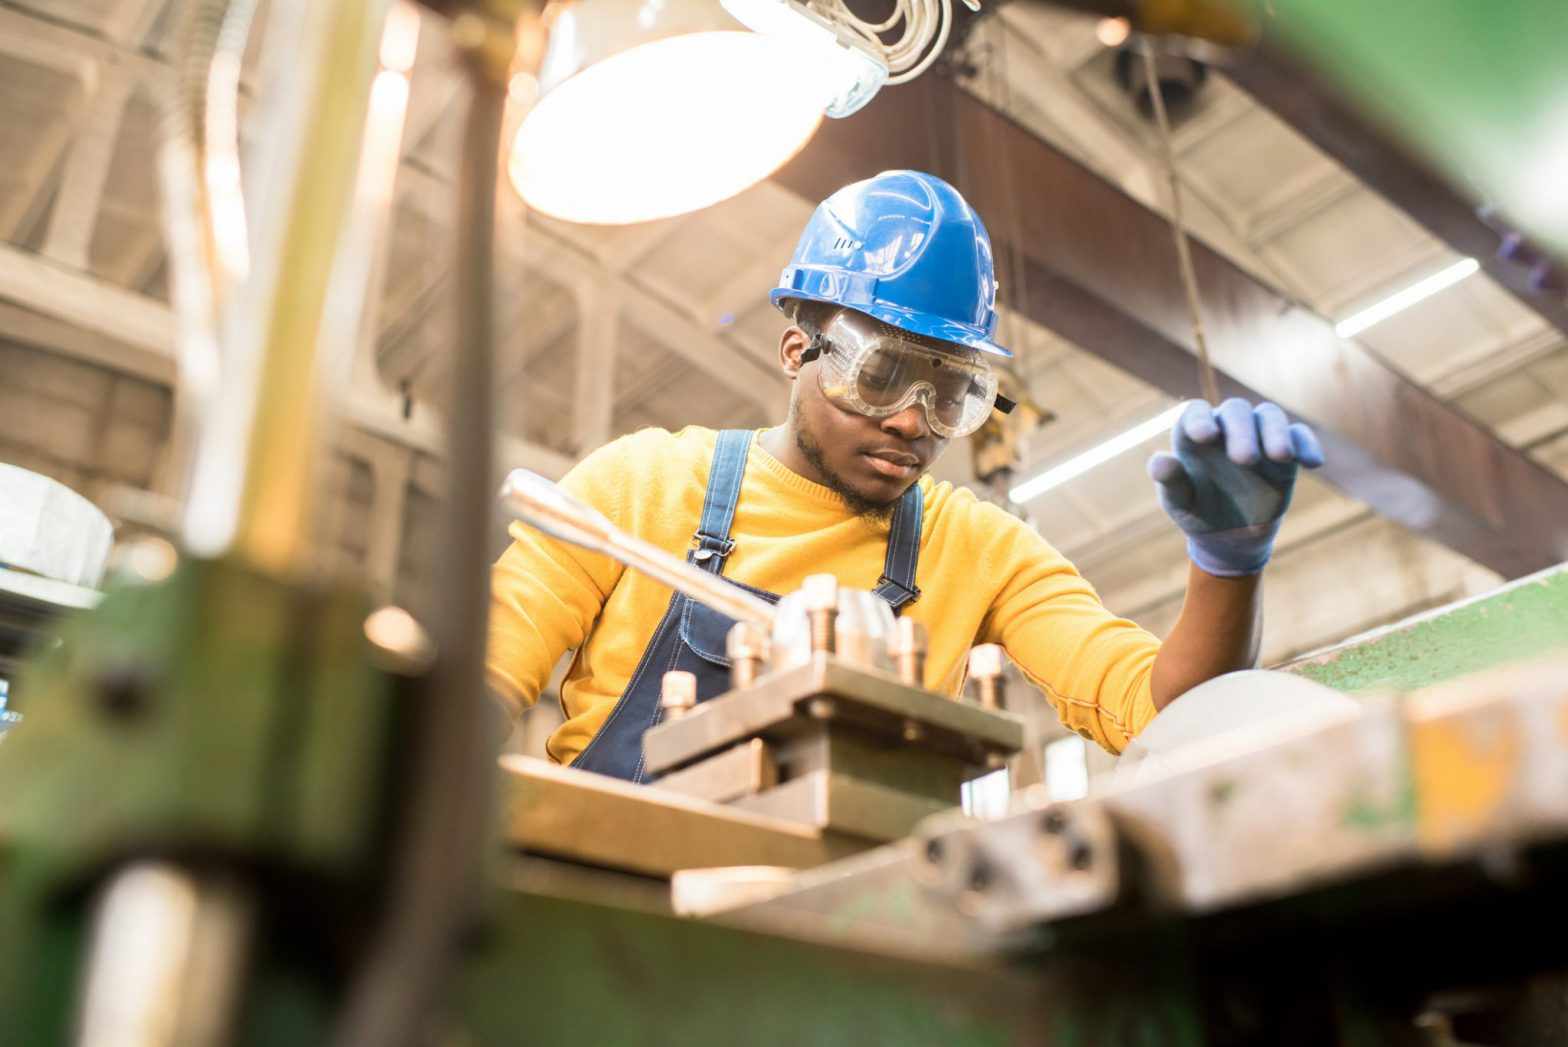 Putting Manufacturing Safety Front-and-Center